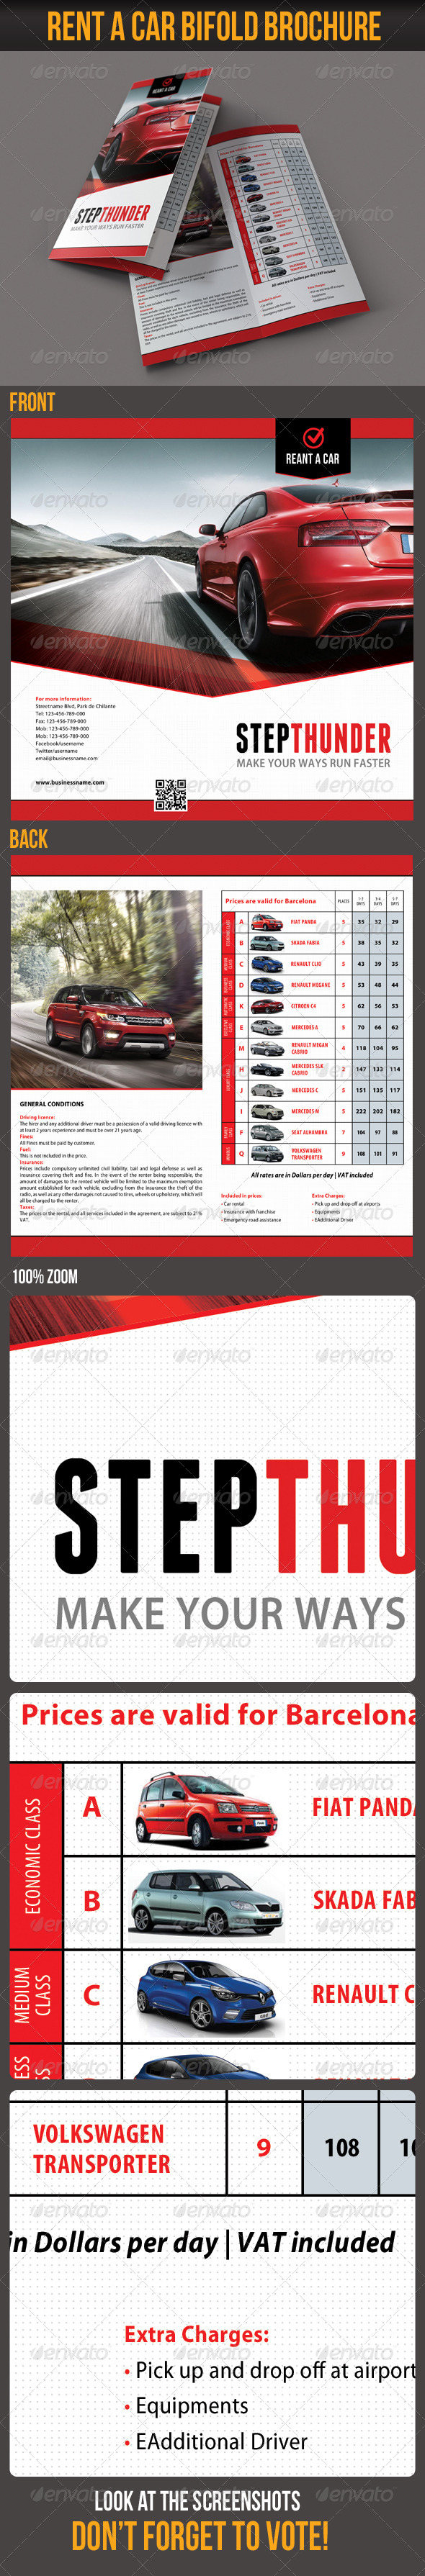 Rent A Car Bifold Brochure - Corporate Flyers